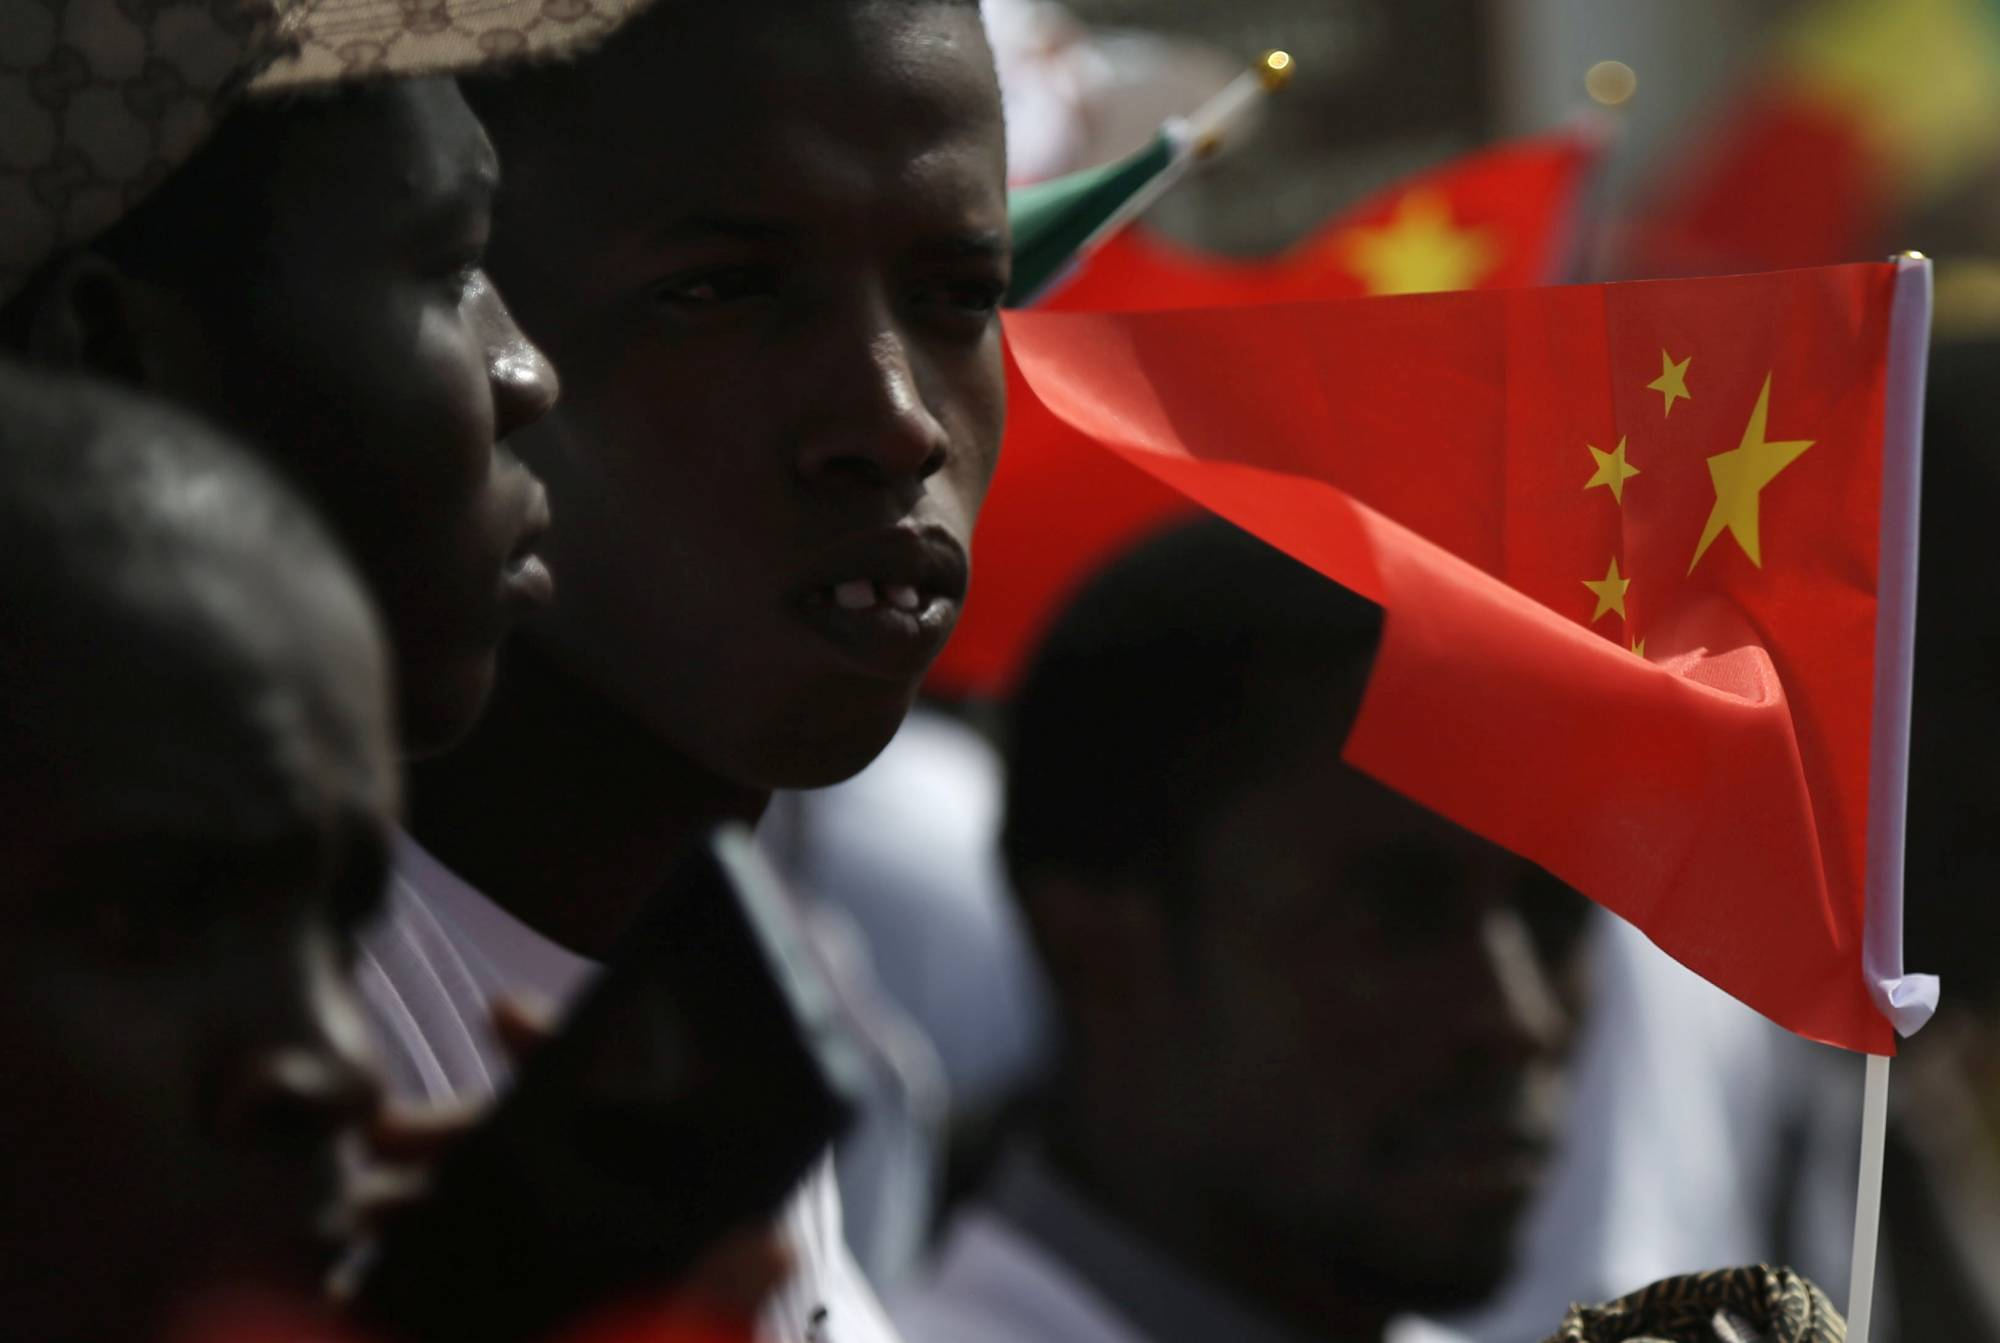 Well wishers holding flags wait for the arrival of Chinese President Xi Jinping at the Leopold Sedar Senghor International Airport at the start of his visit to Dakar